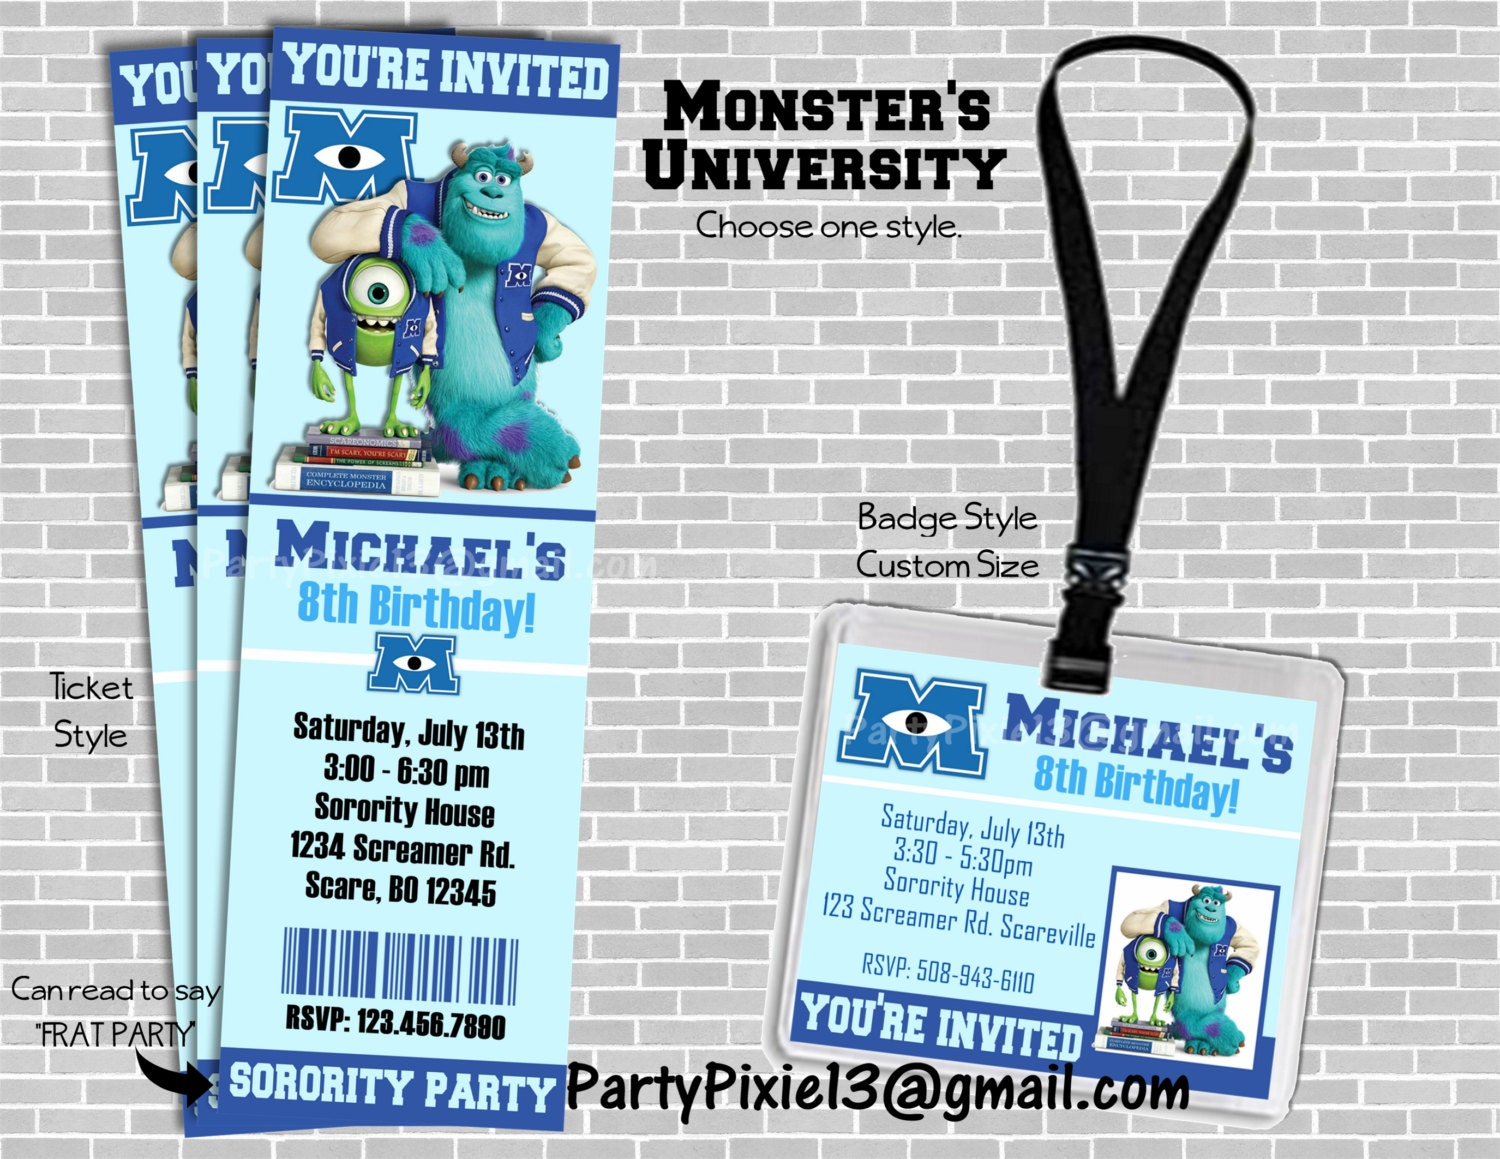 Cute Monsters University Party Invitations Images - Invitation Card ...